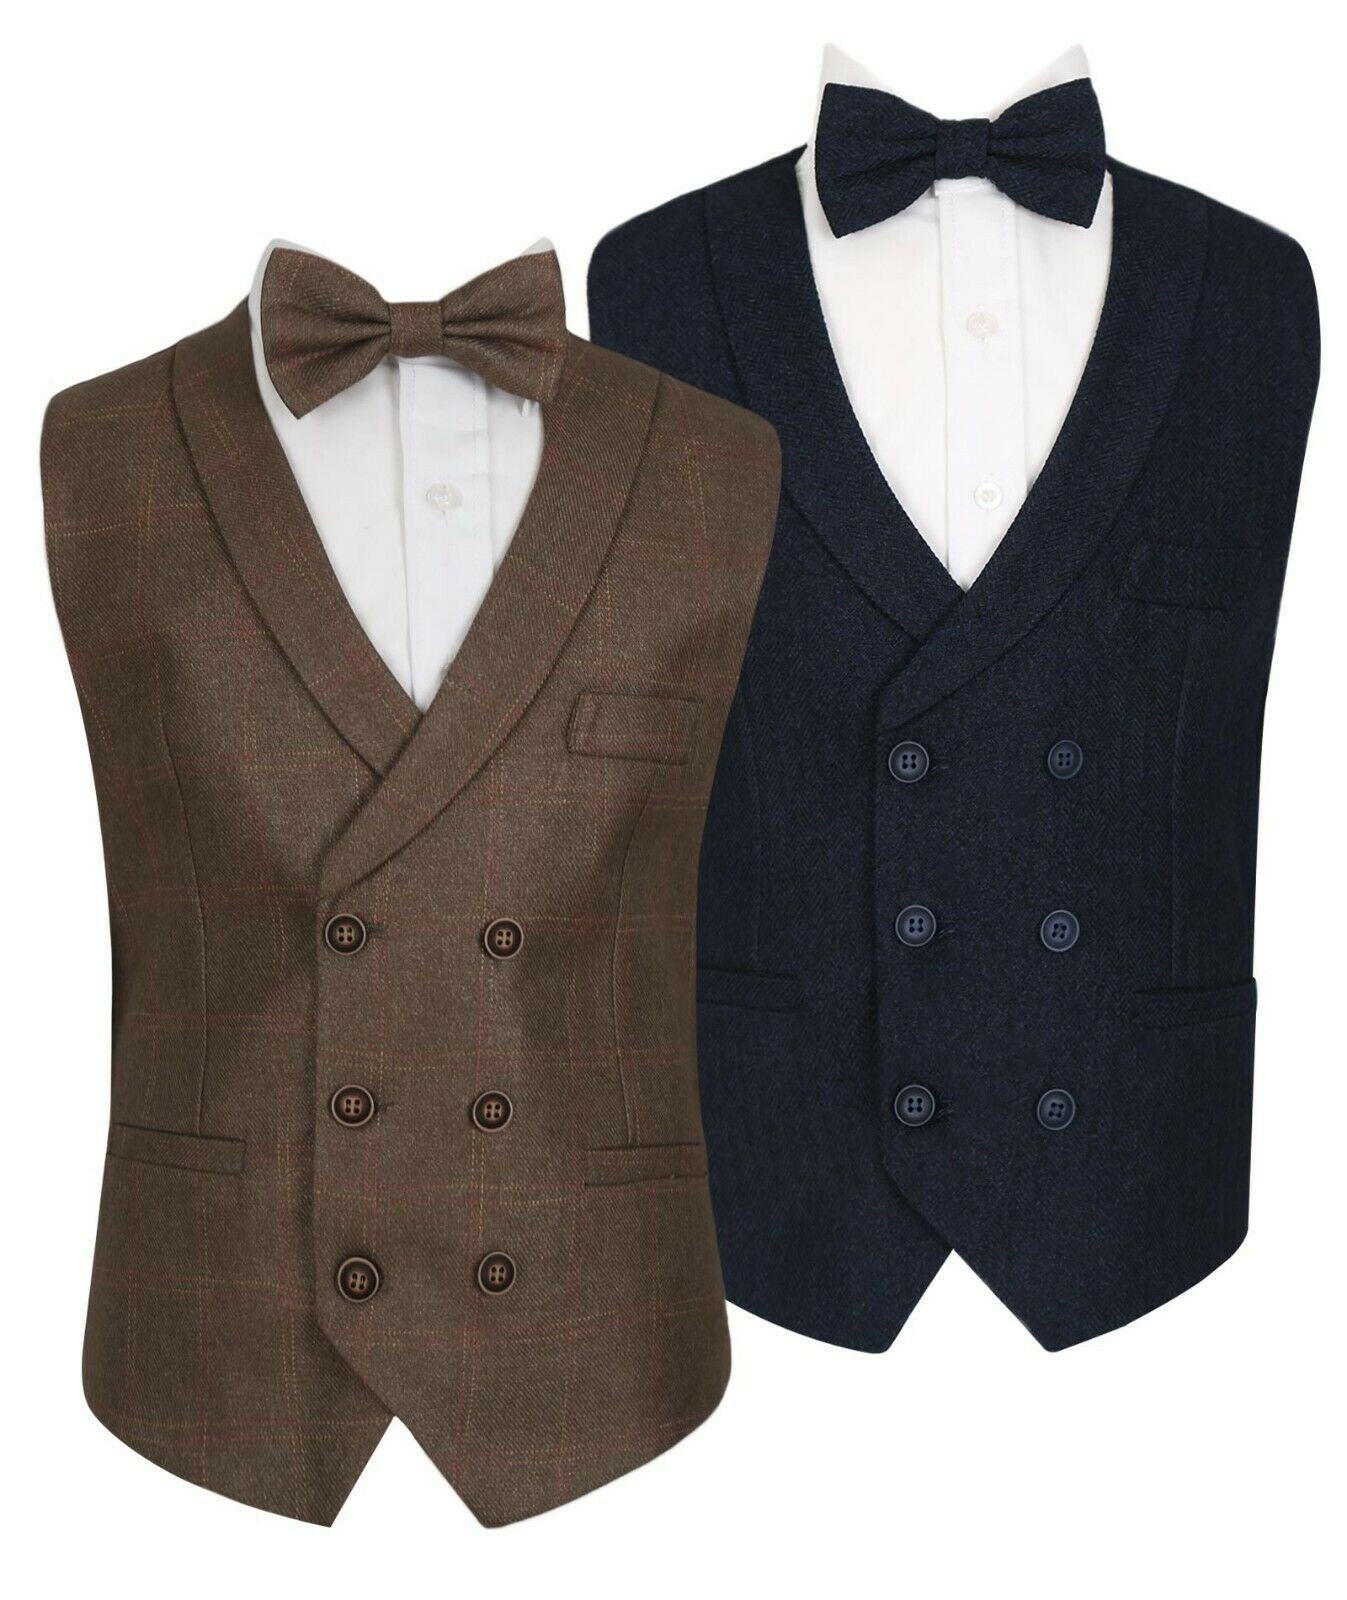 Flamingo Men/'s Boys Double Breasted Tweed Check Waistcoats Vests Casual Sets